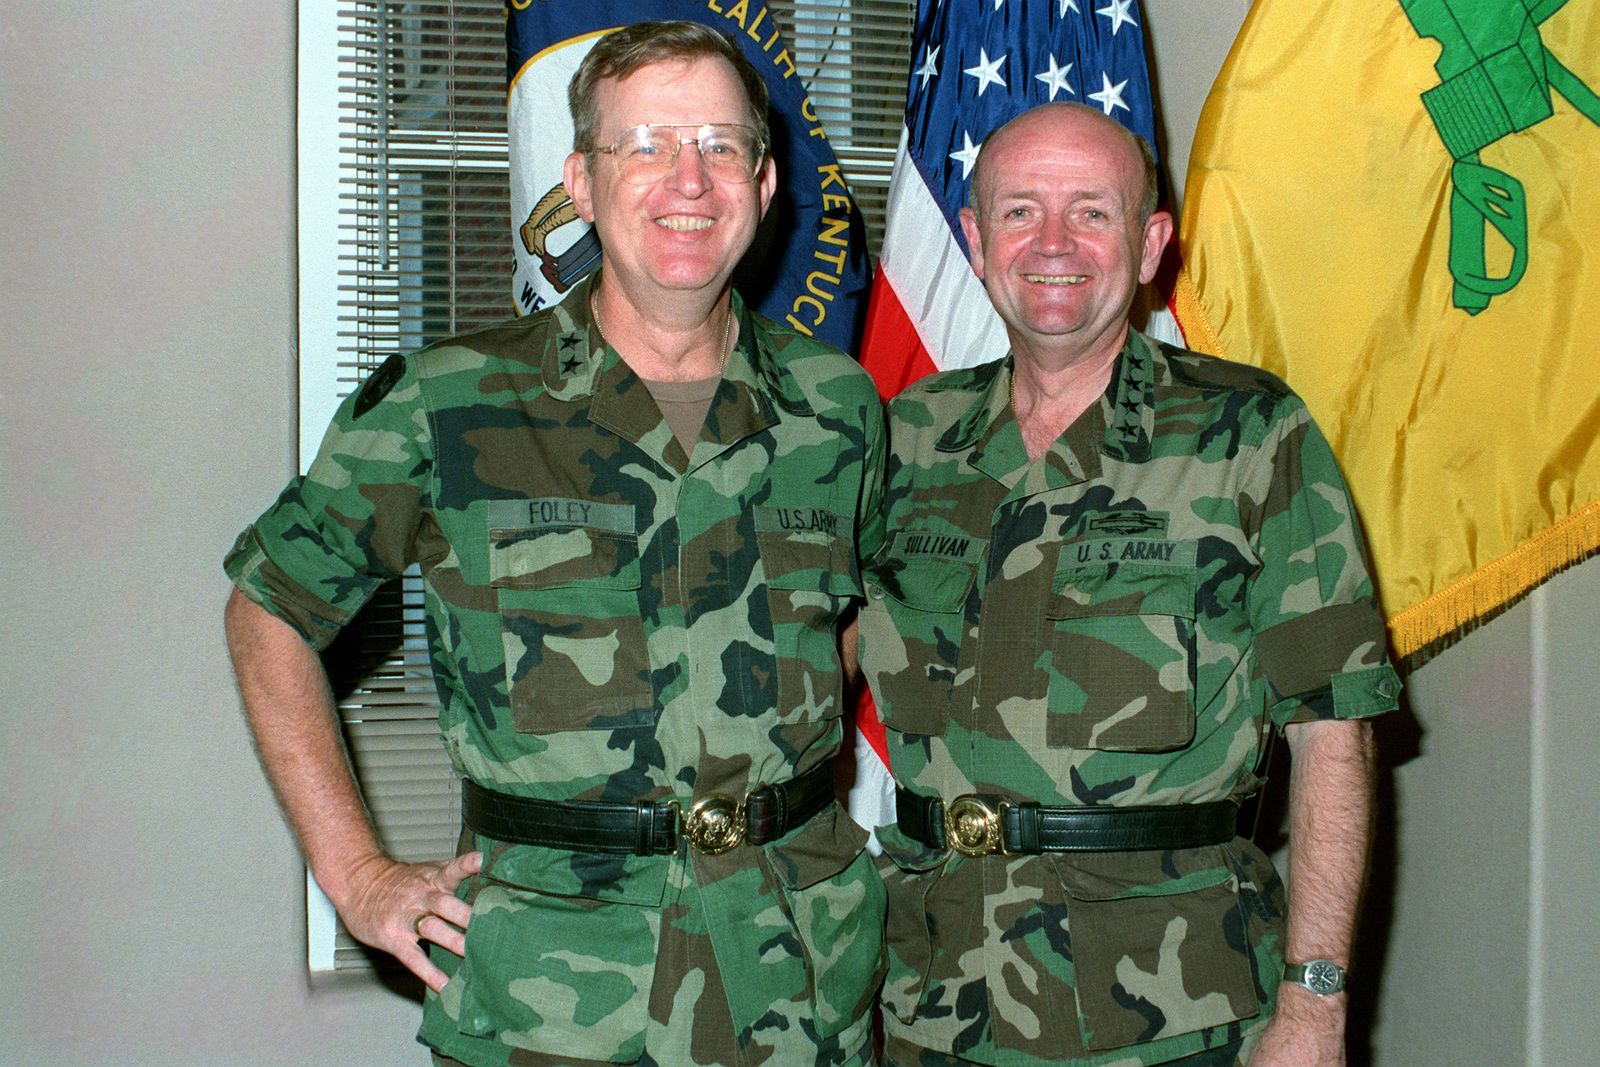 GEN Gordon R. Sullivan, vice chief of staff of the Army, poses for a photograph with MGEN Thomas C. Foley, commanding officer of the United States Army Armor Center, during a tour